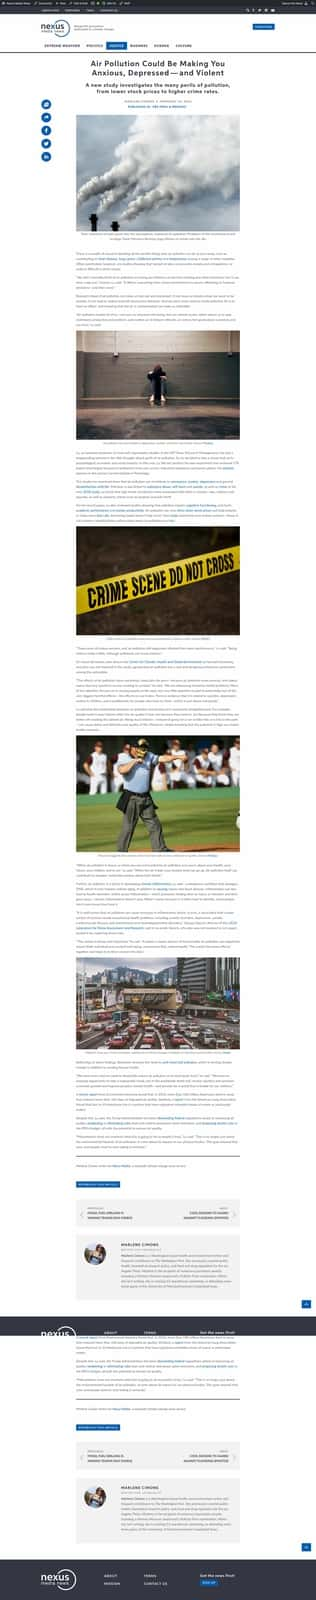 Individual Article Page View | Nexus Media News